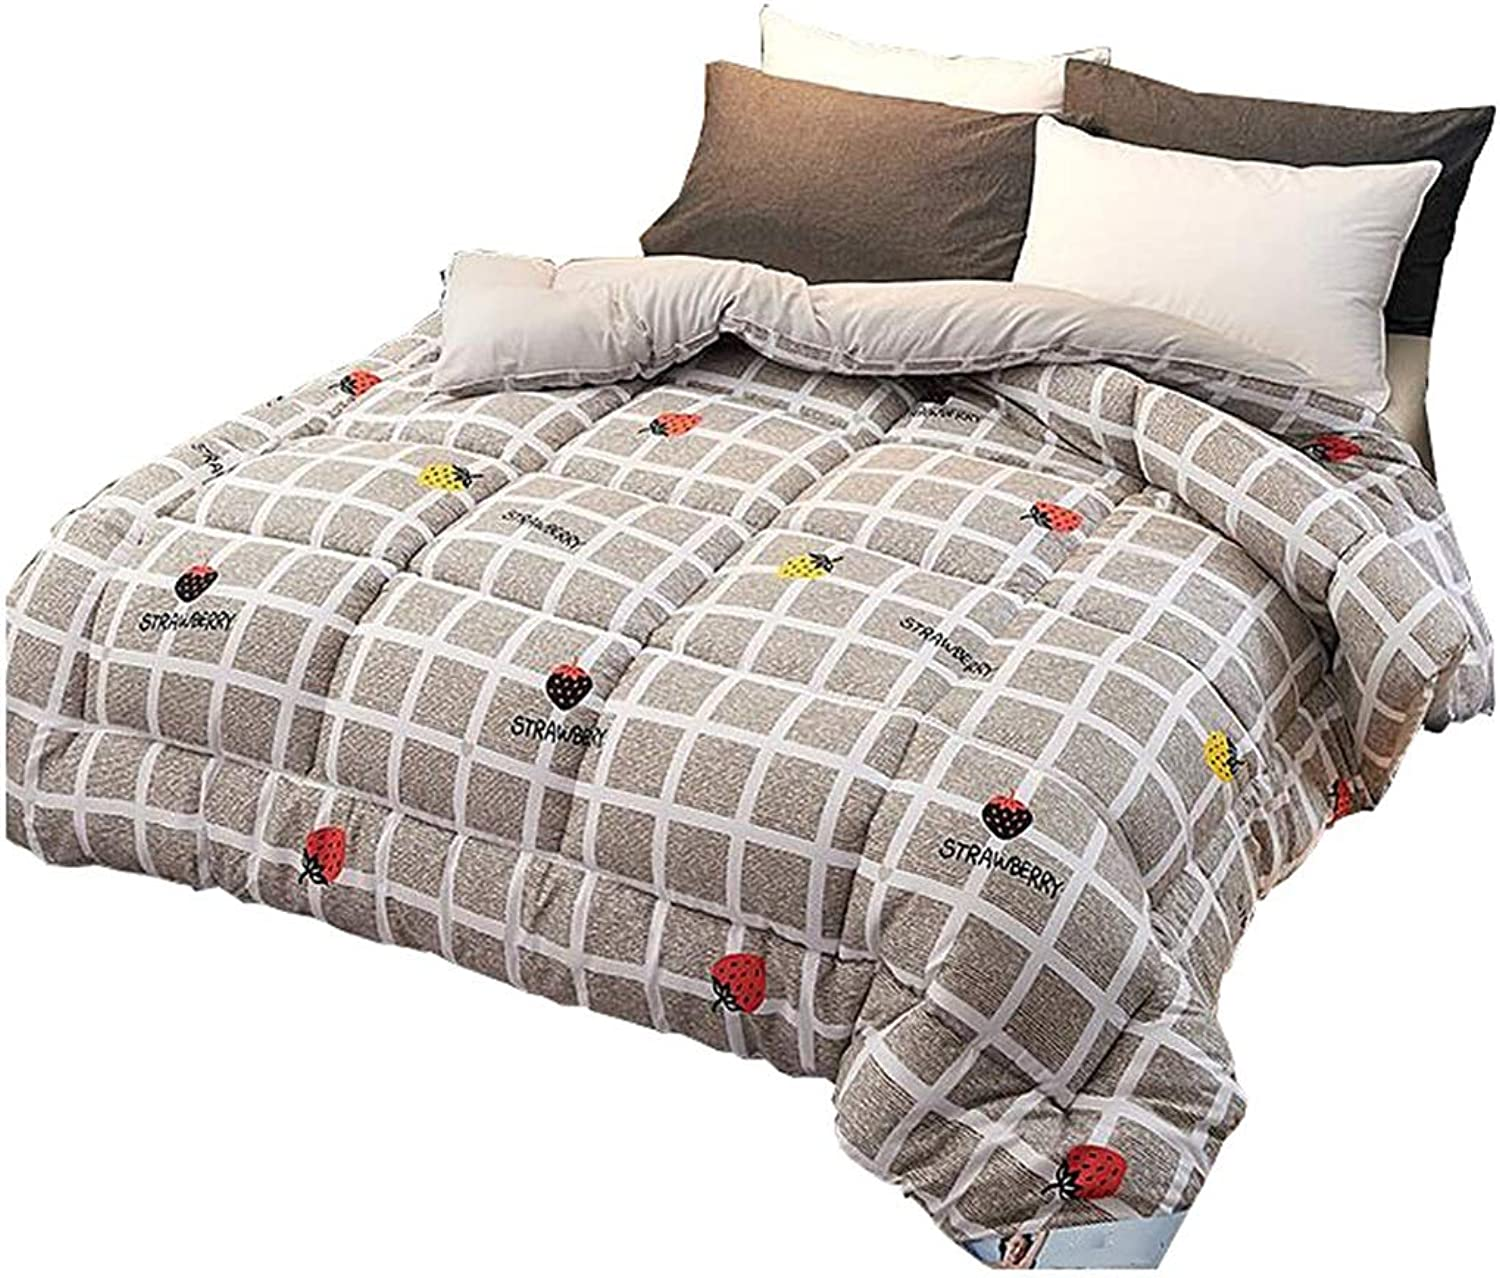 Quilt Thicken Warm and Soft for All Season All-Season Quilted Comforte Rhypoallergenic 100% Cotton Fabrics Quilted Comforter with Corner Tabs (Size   180cmx220cm3kg)